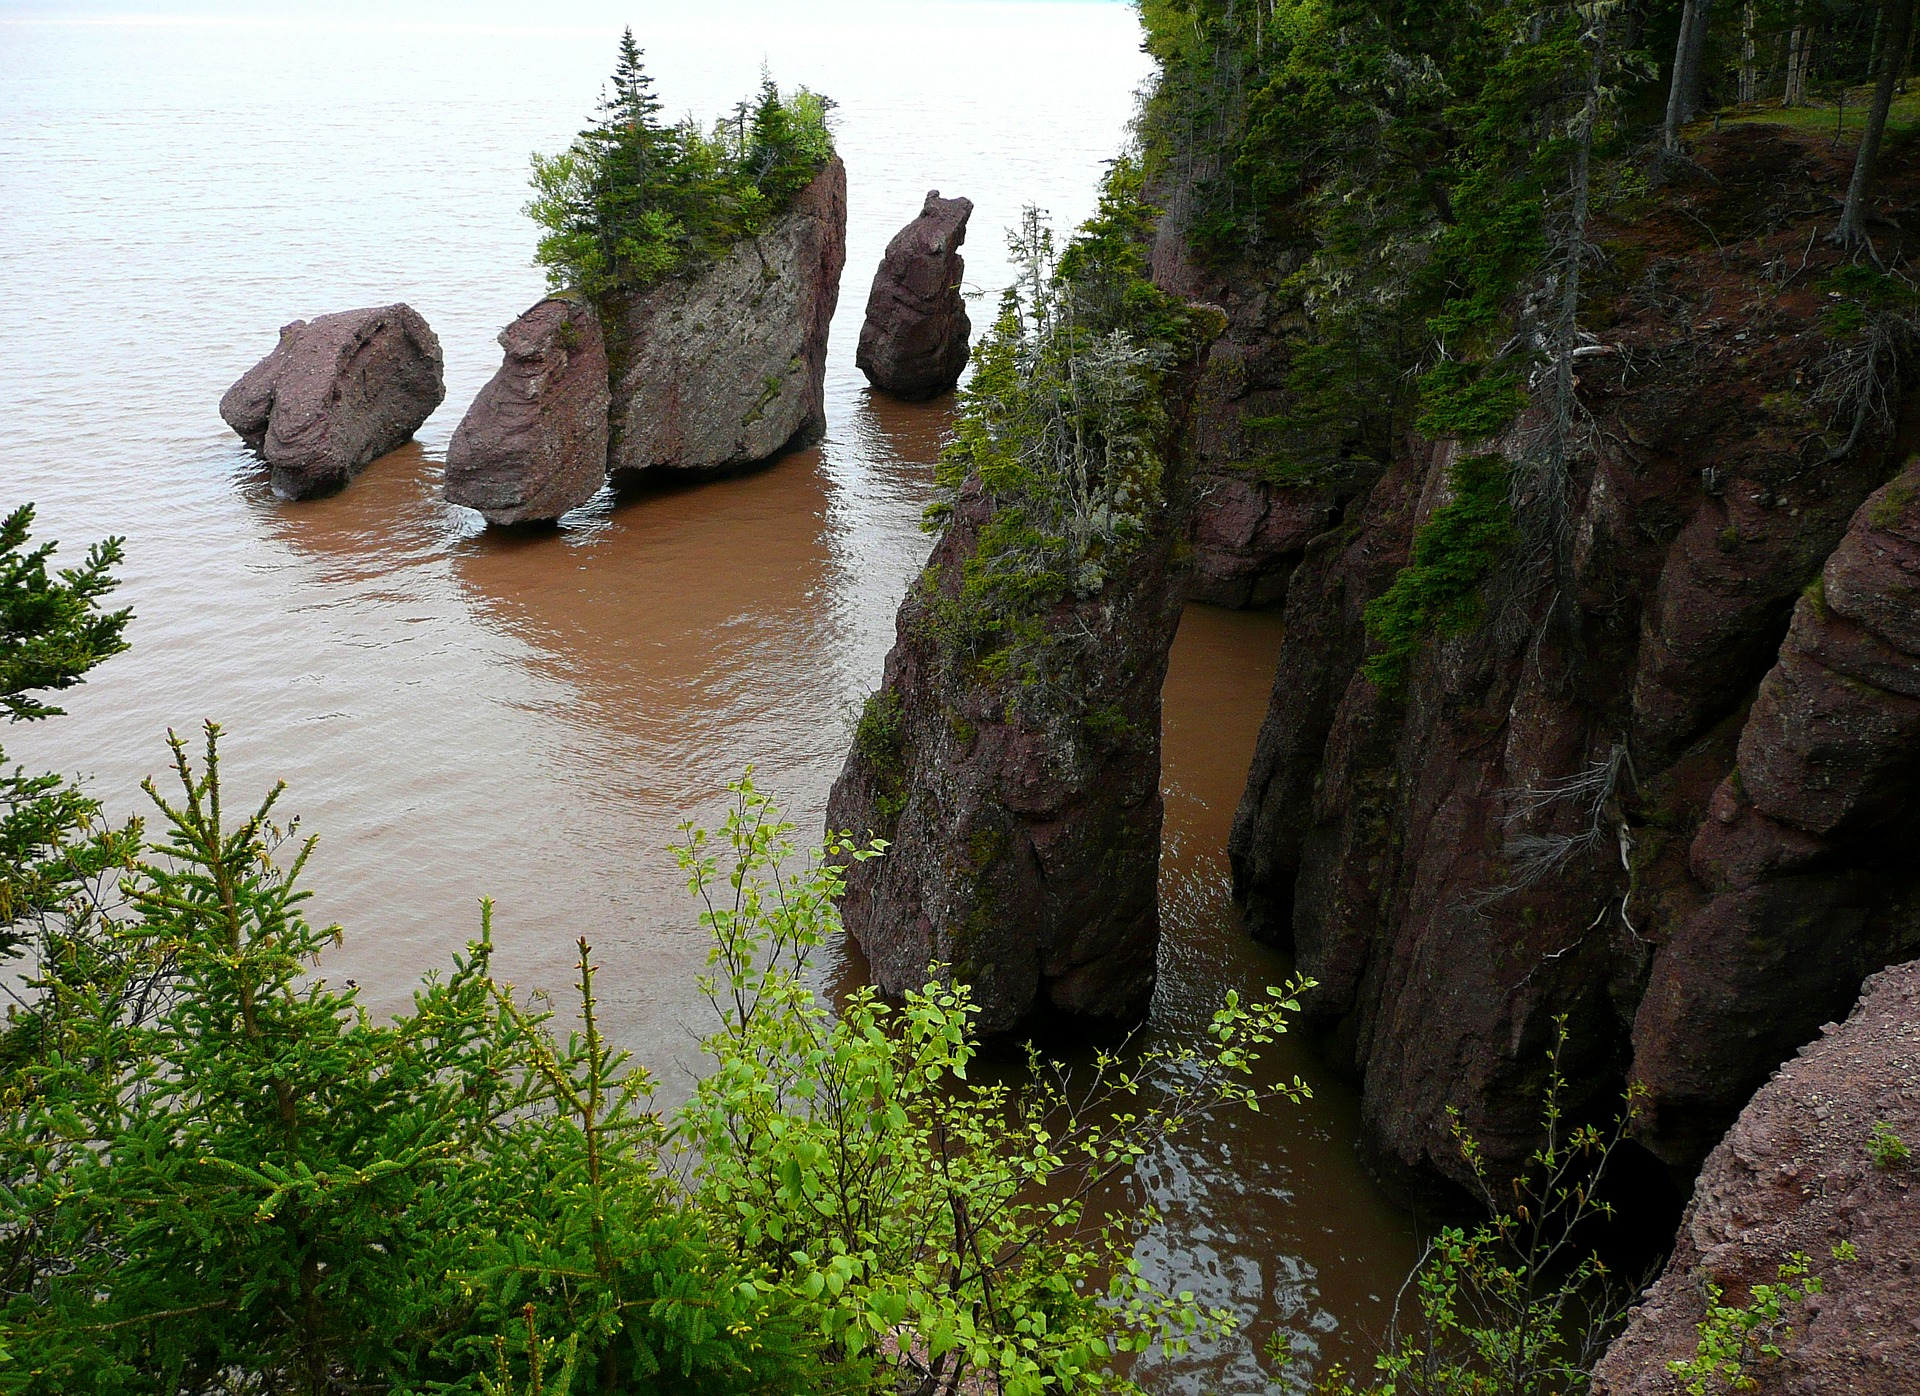 Landscapes of the Canadian Maritimes | Hopewell Rocks, Canada